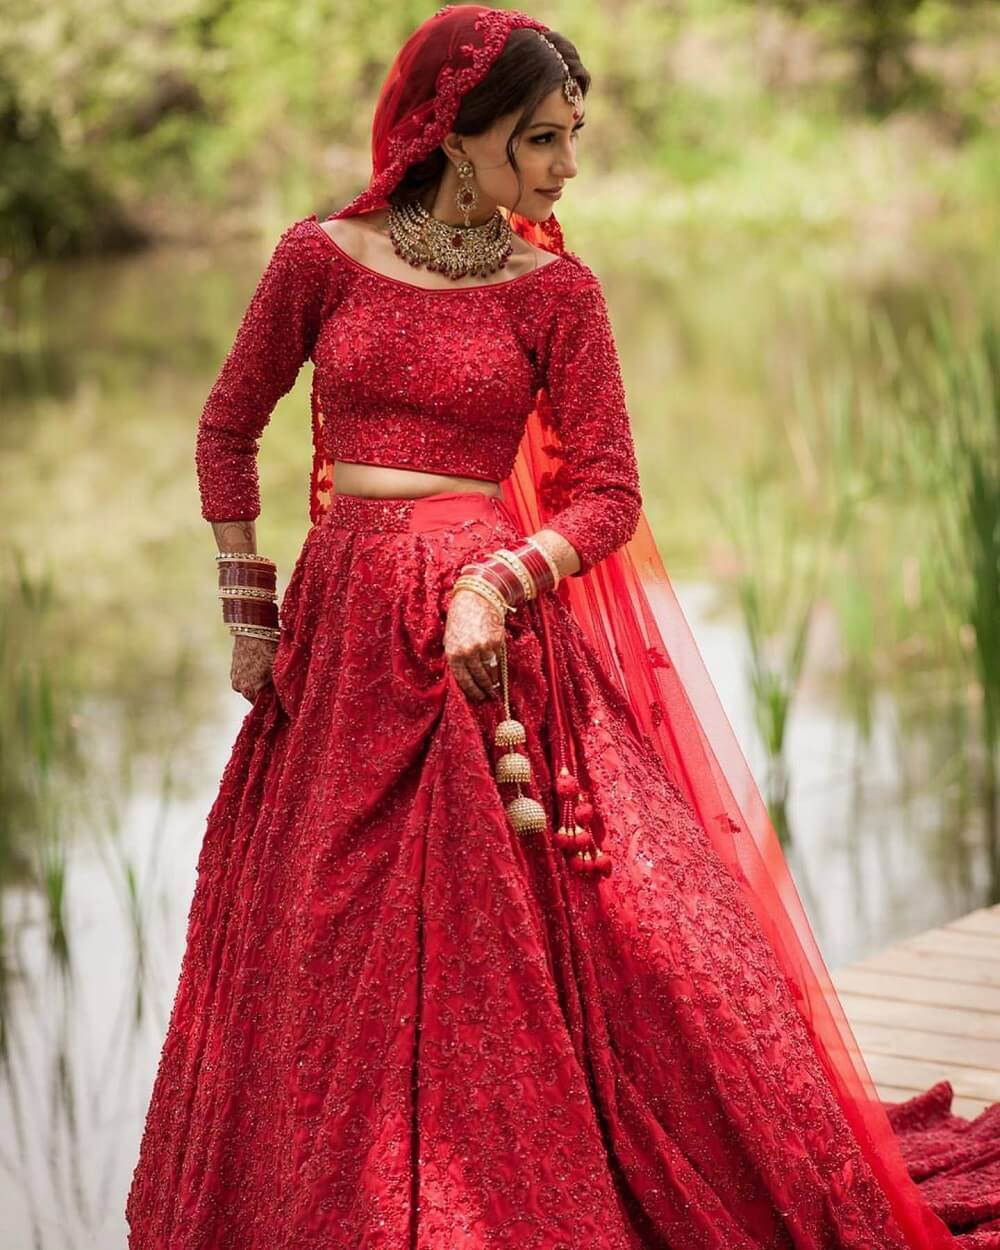 12 Majestic Blouse Designs For Winter Brides To Elegantly Flaunt This Wedding Season